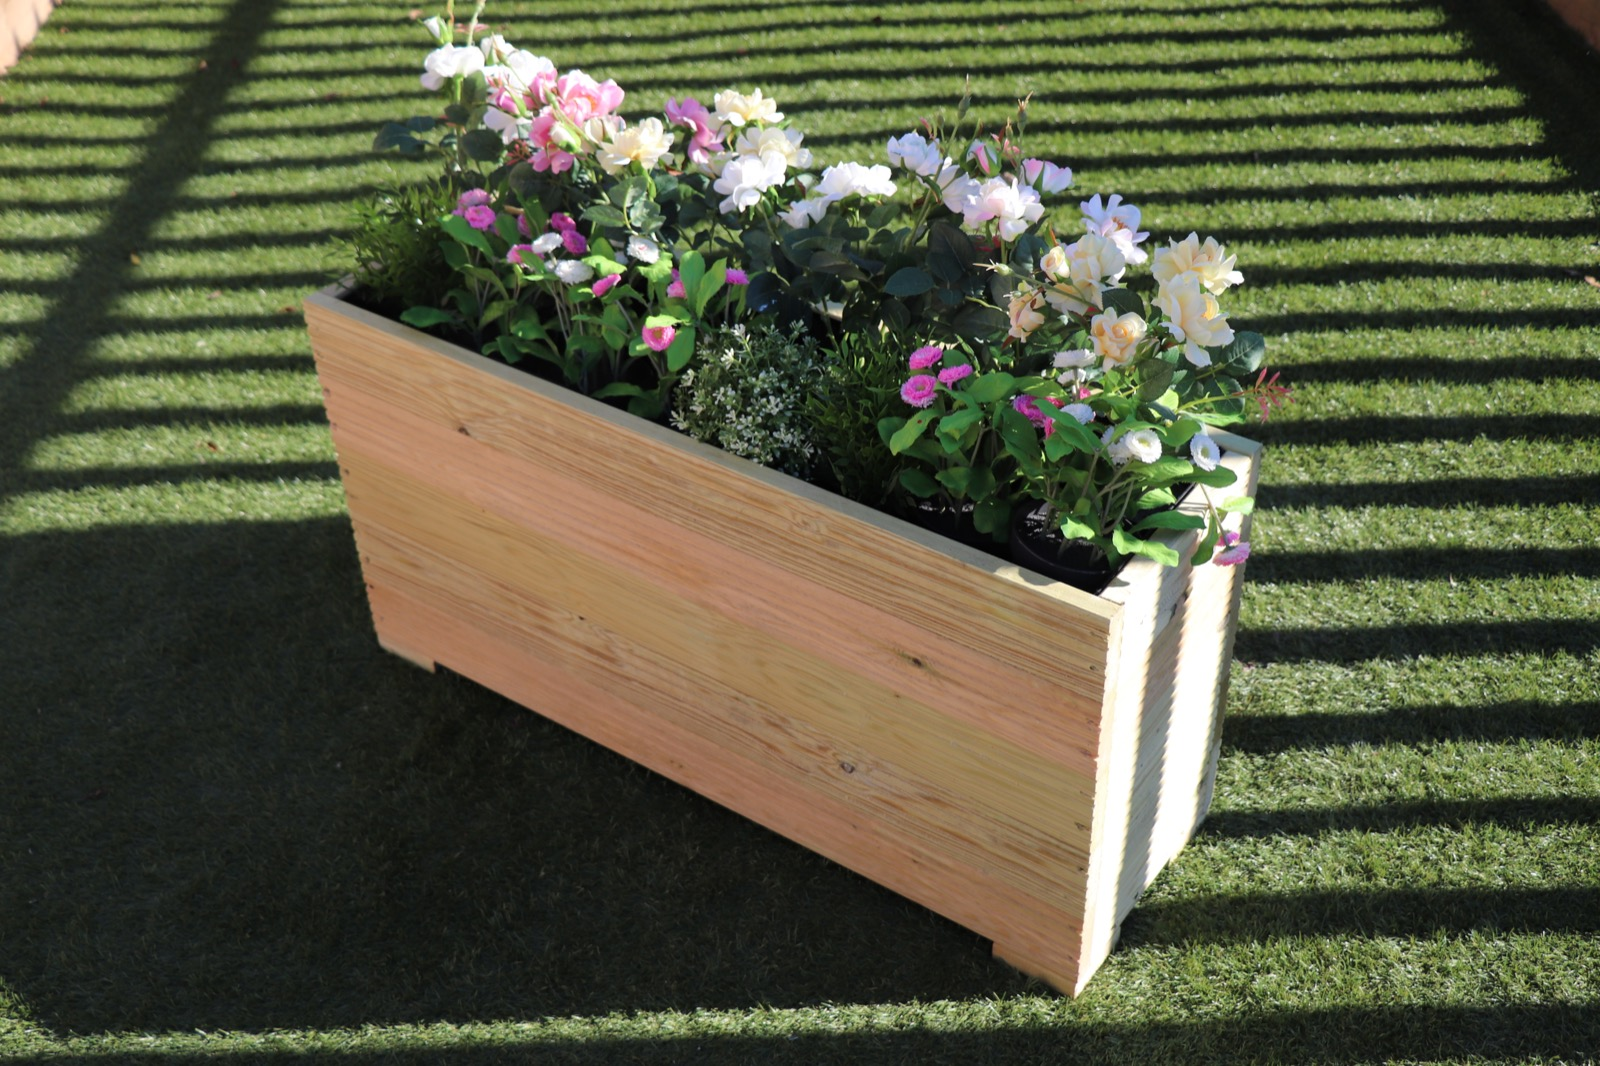 100x32x53 cm extra tall wooden garden planter trough. Black Bedroom Furniture Sets. Home Design Ideas